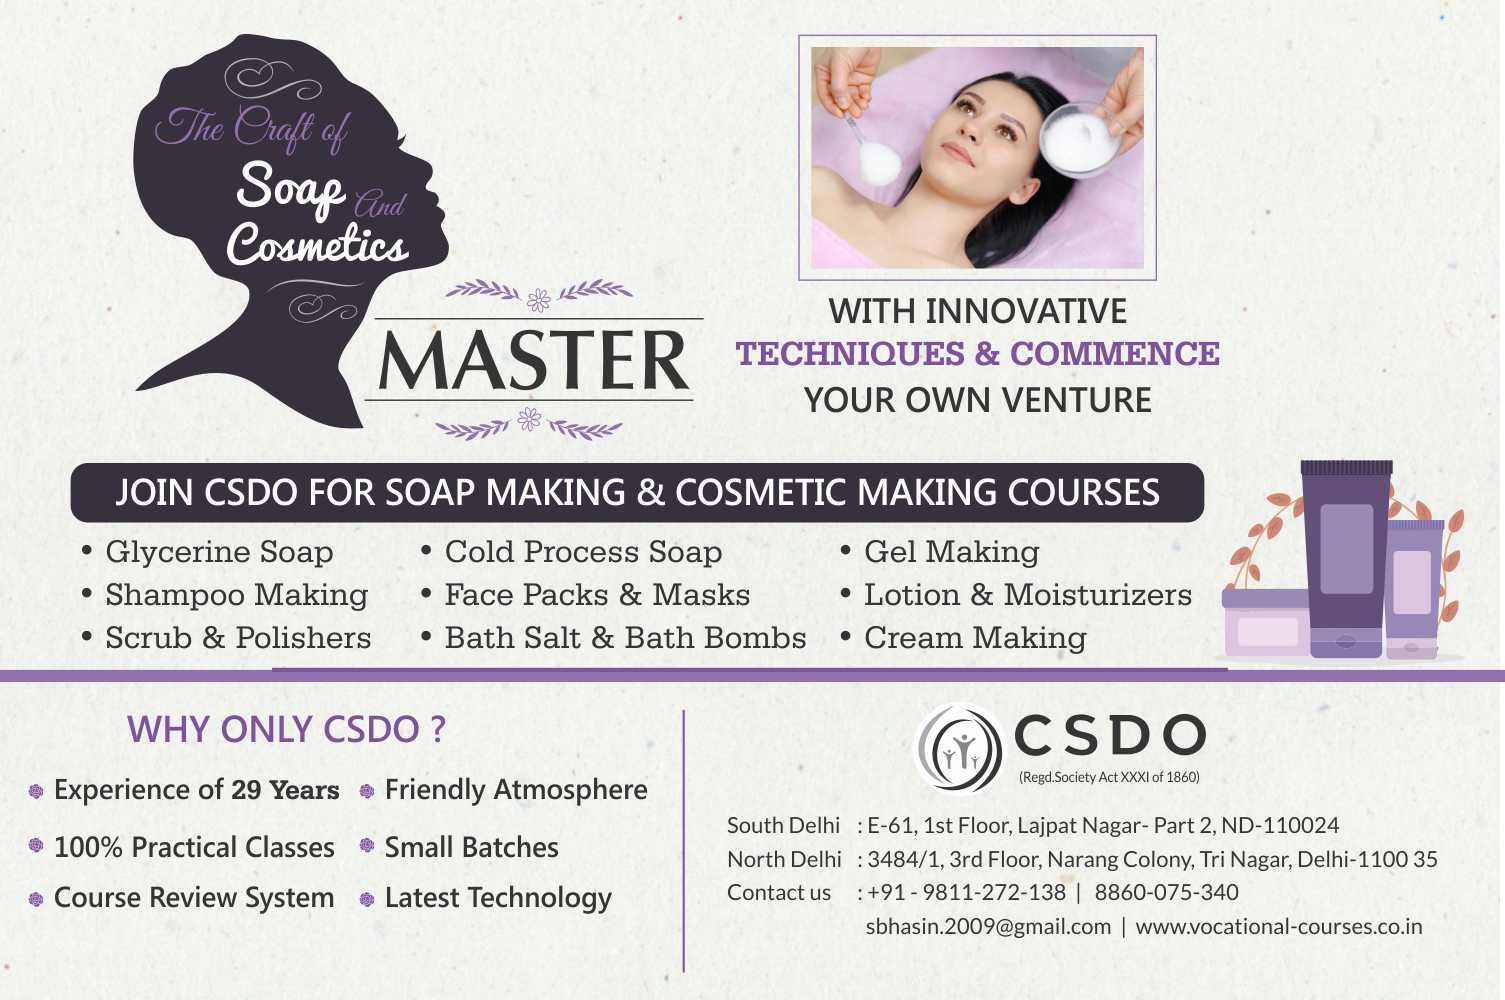 wellness products classes by csdo Making cosmetics, Soap